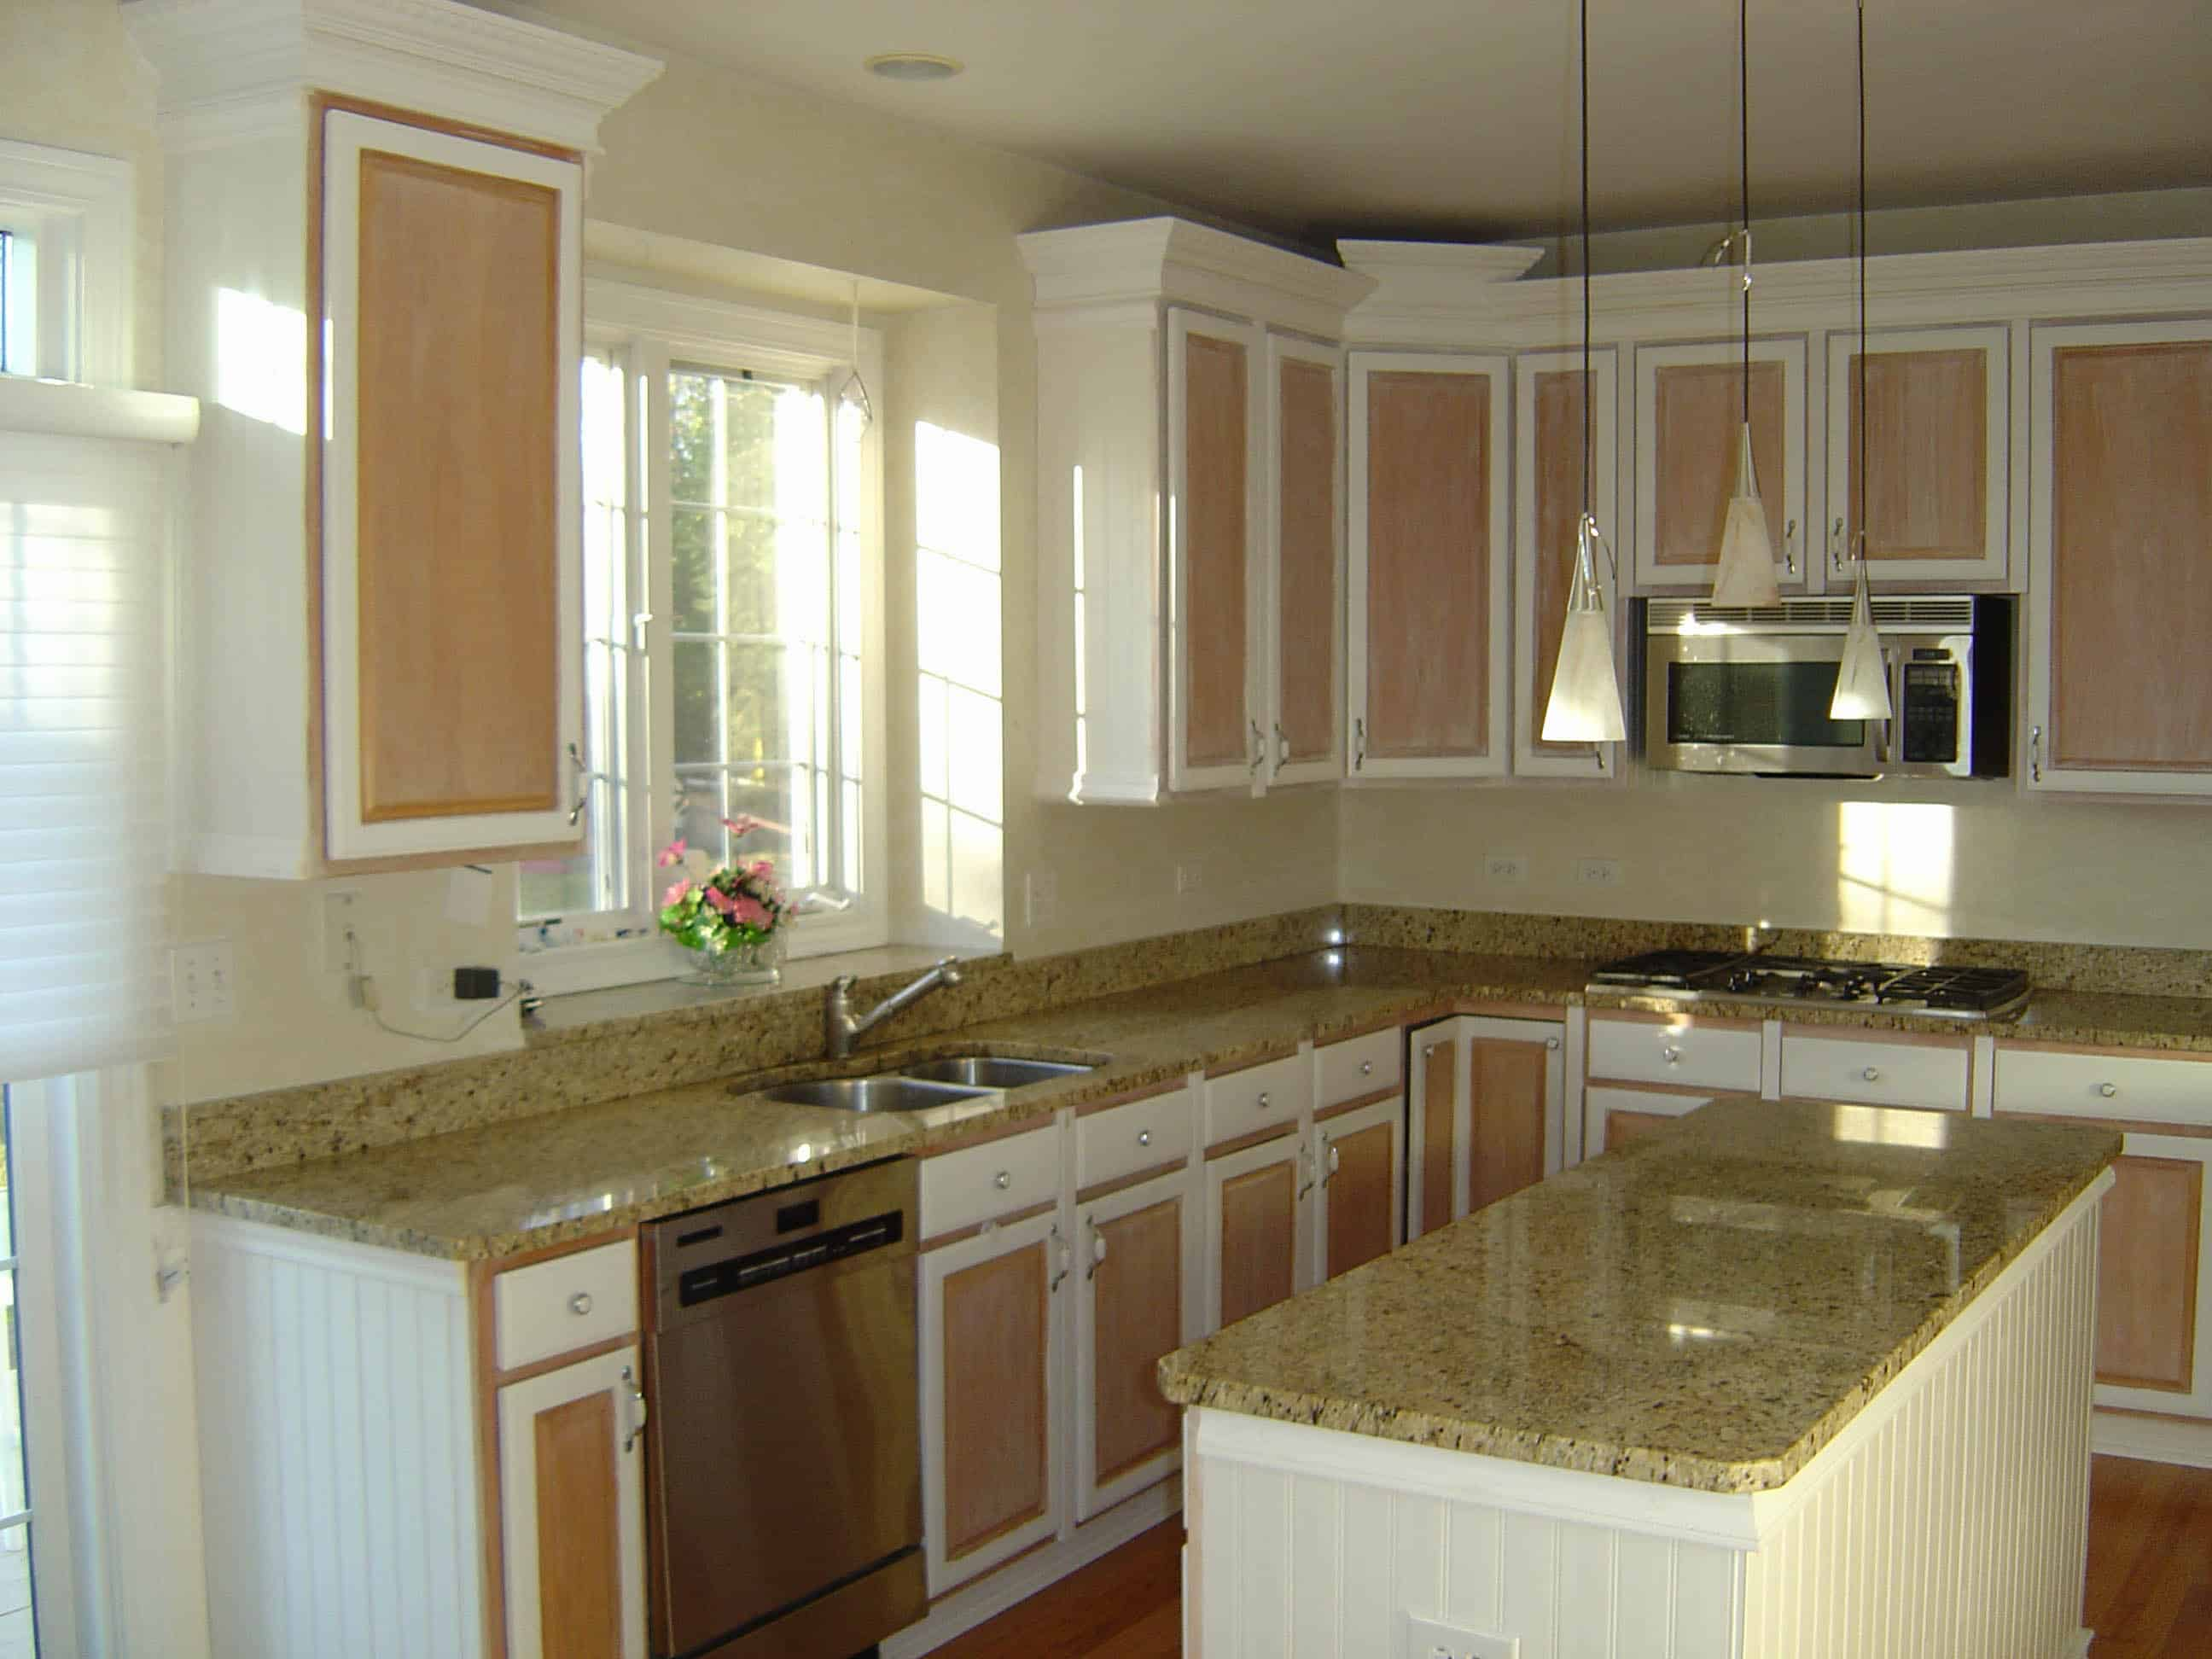 How Much Does It Cost To Reface Kitchen Cabinets The